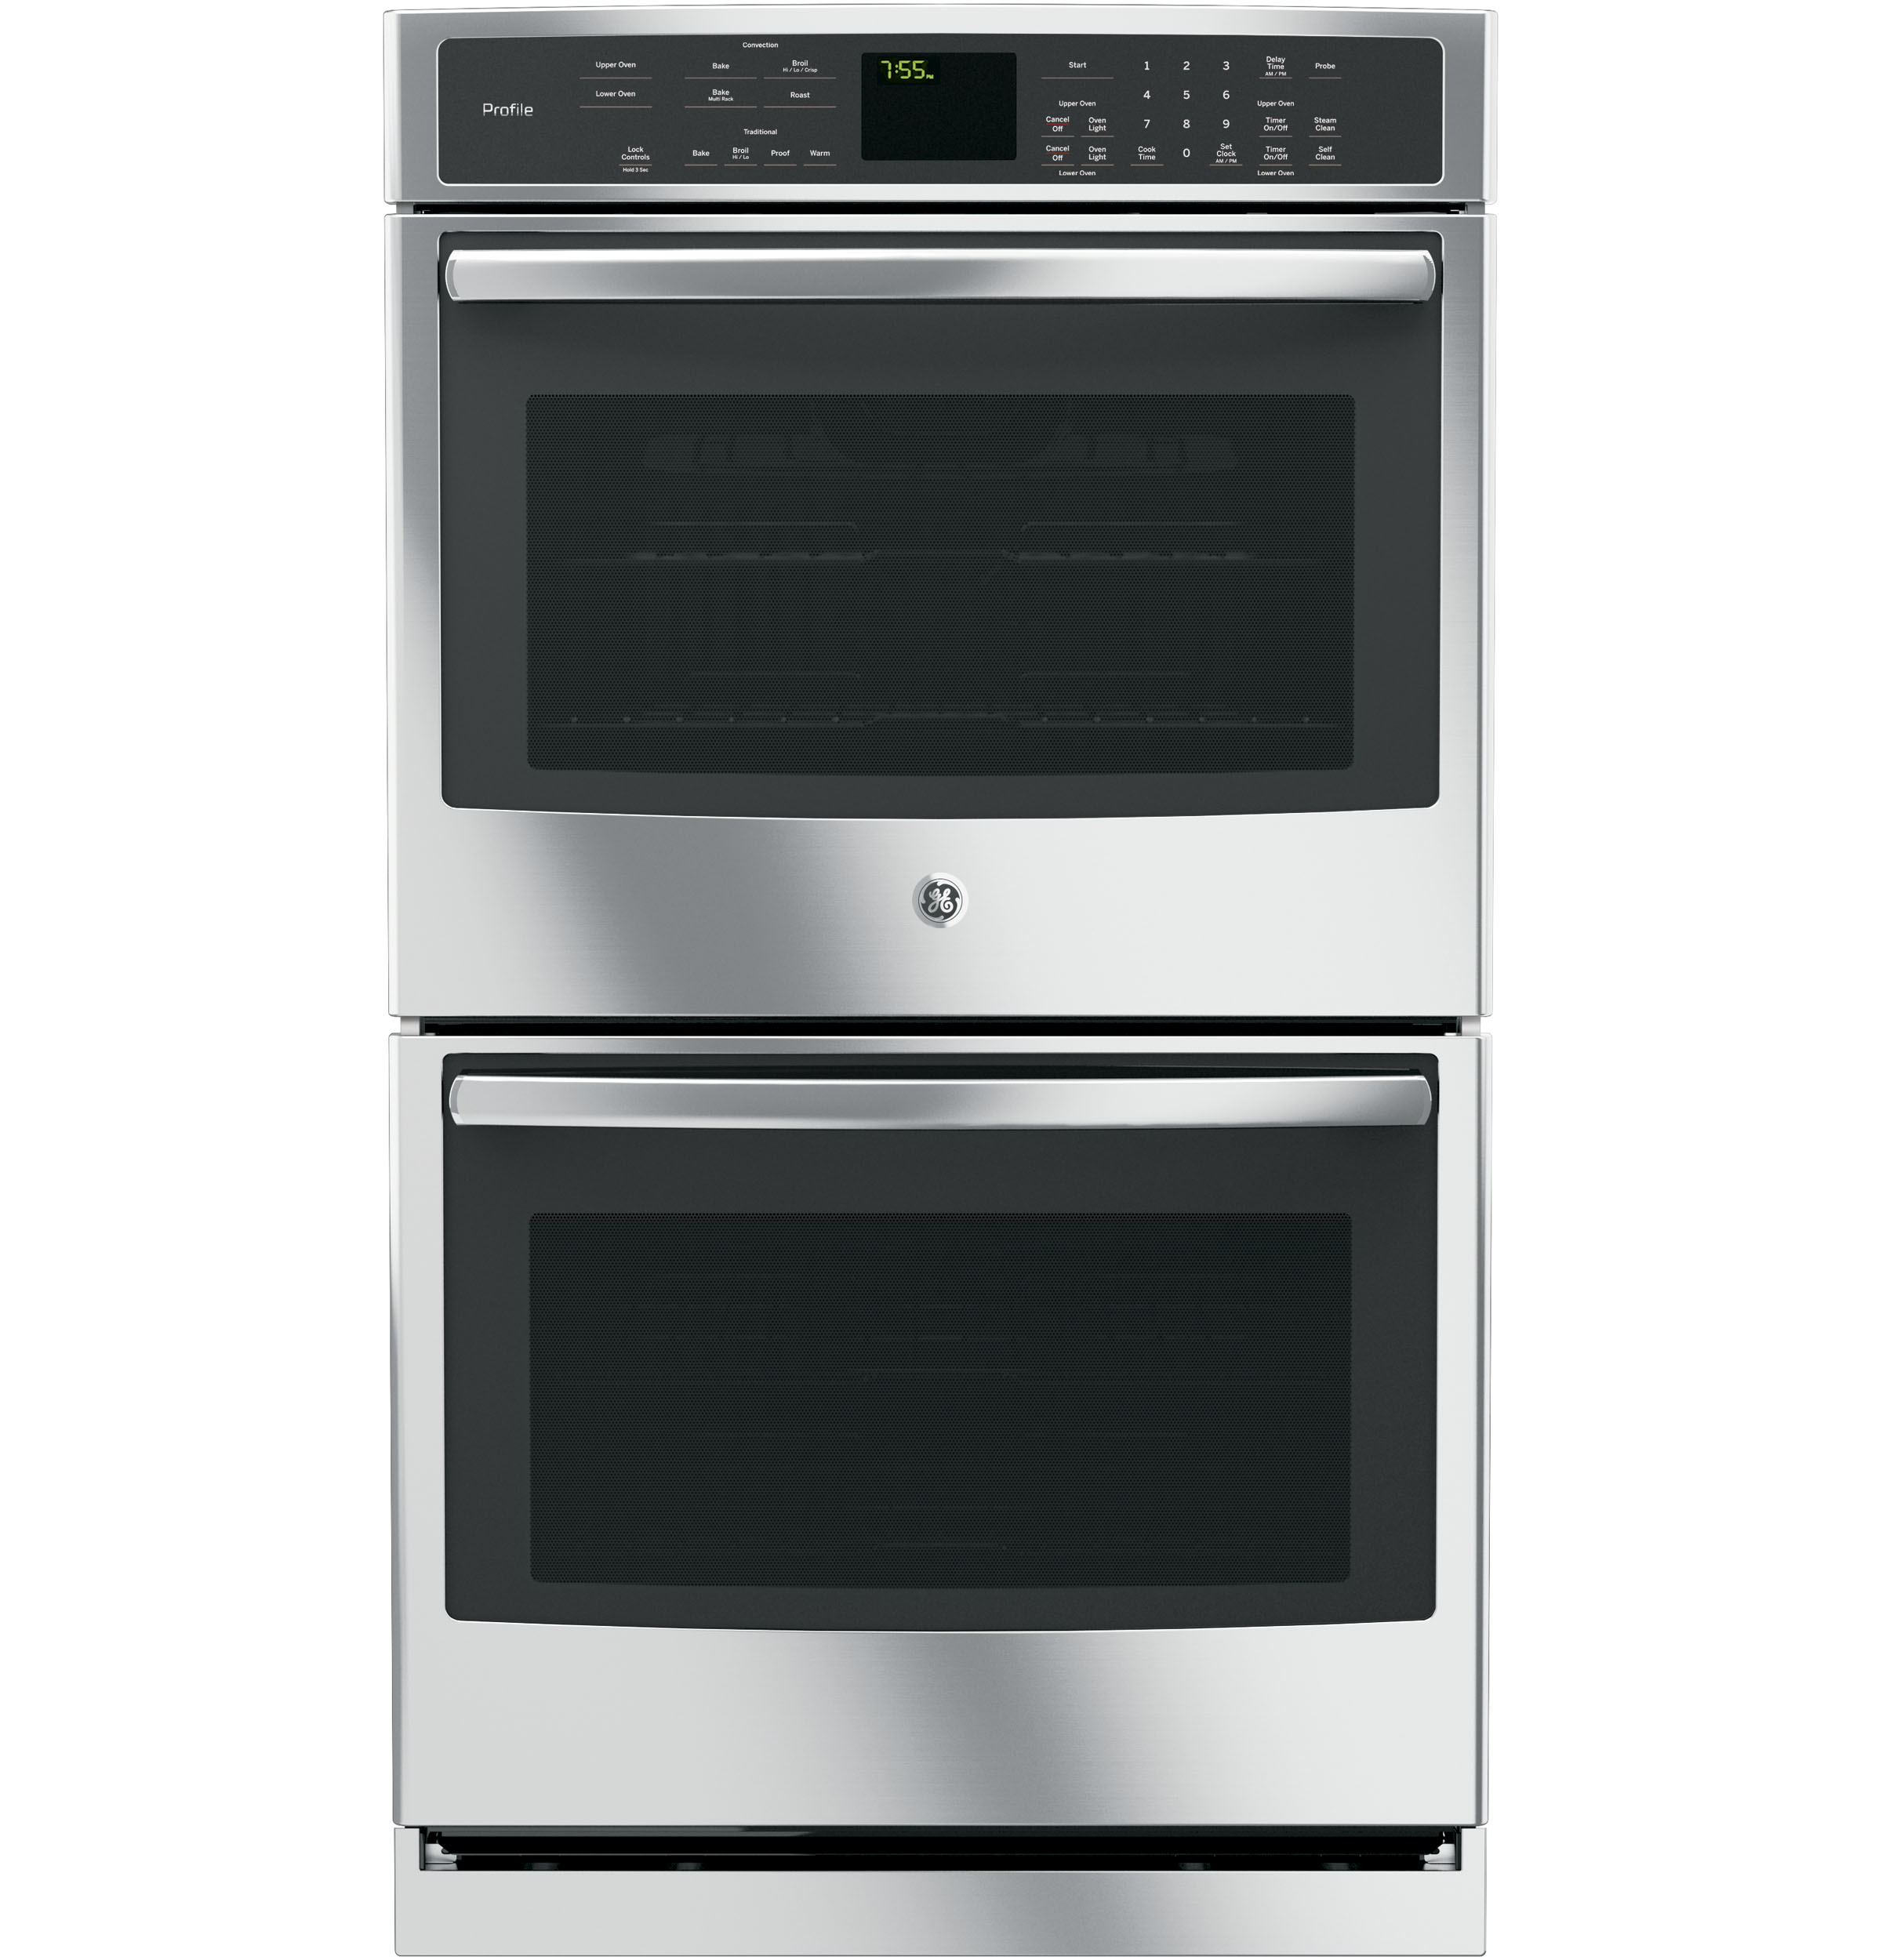 "GE Profile GE Profile™ Series 30"" Built-In Double Wall Oven with Convection"